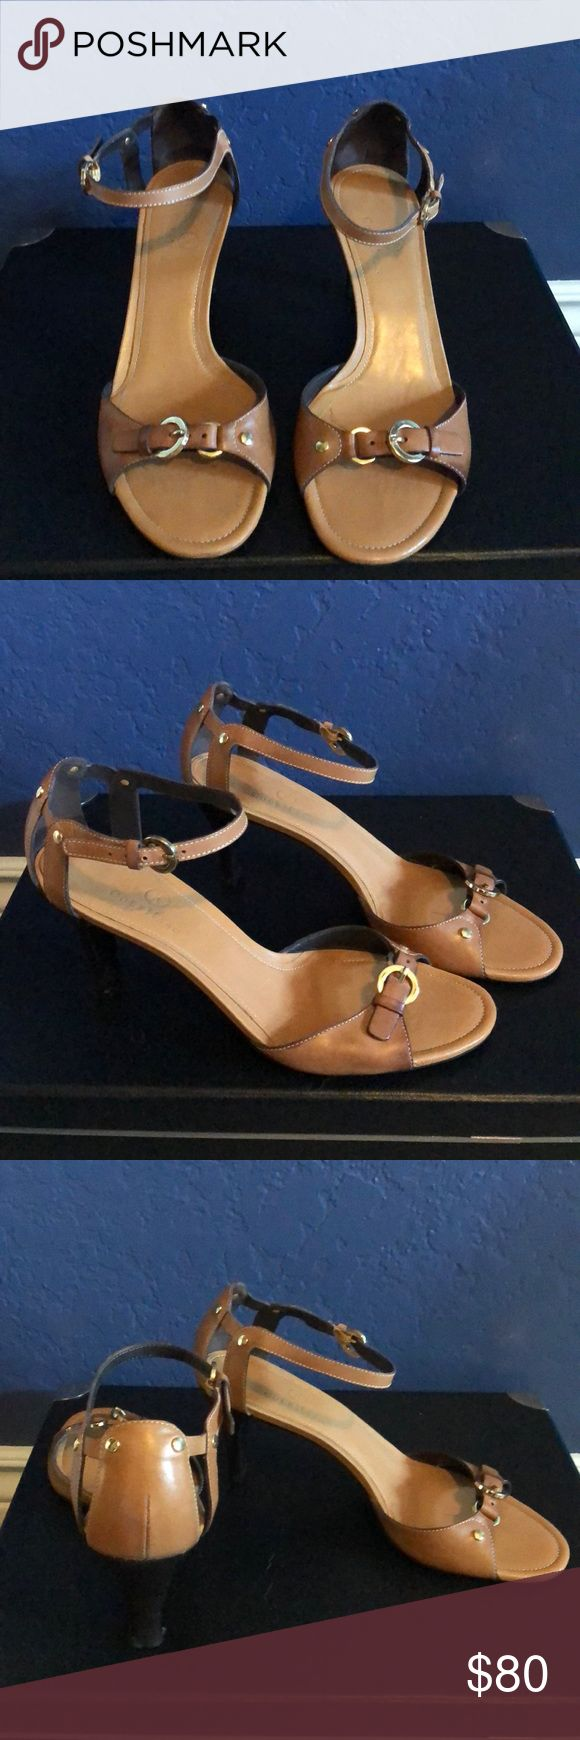 Cole Haan Pump with Straps, Camel Color Cole Haan Strappy Pump, Camel Color, New Cole Haan Shoes Heels